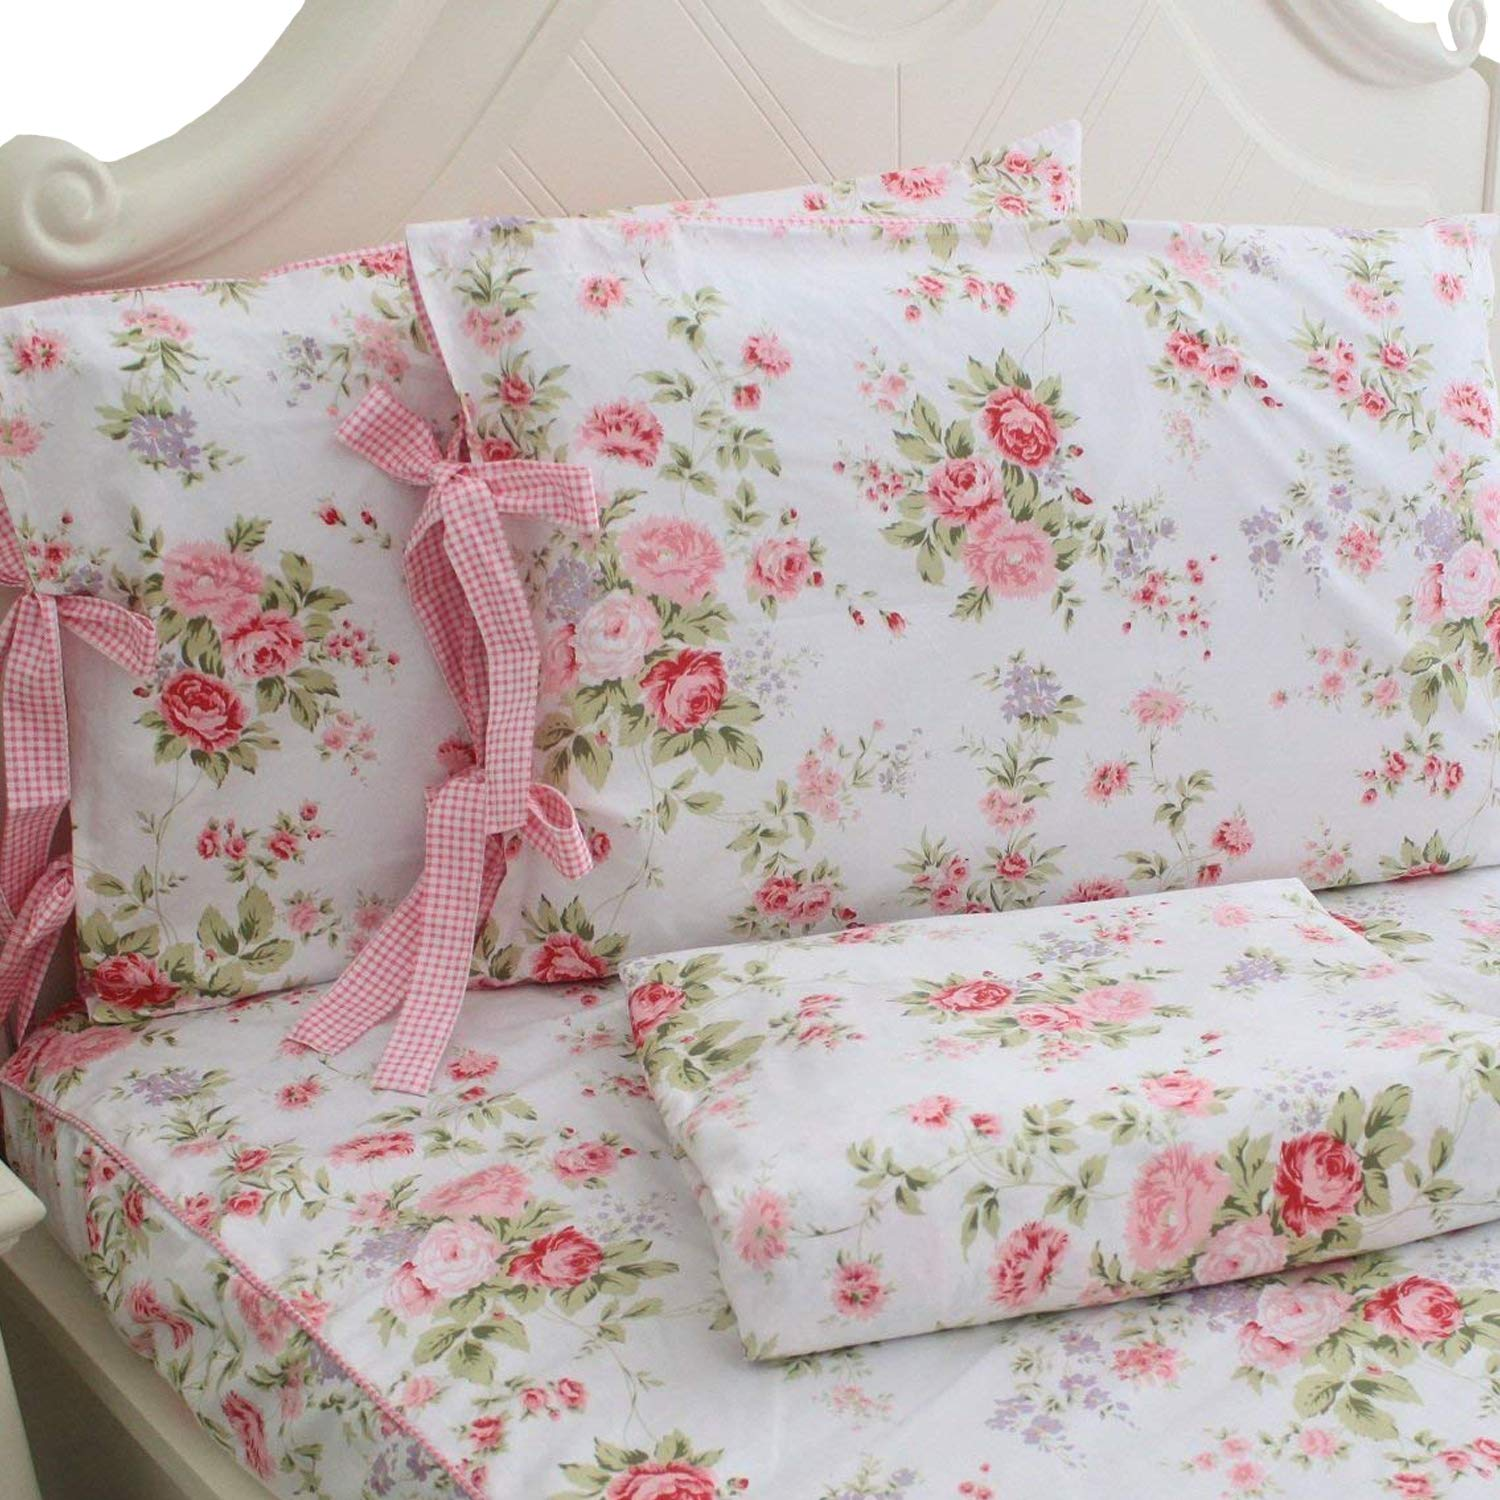 FADFAY Cotton Bed Sheets Set Shabby Rose Floral Print Sheet Bedding 4-Piece Twin Extra Long Size